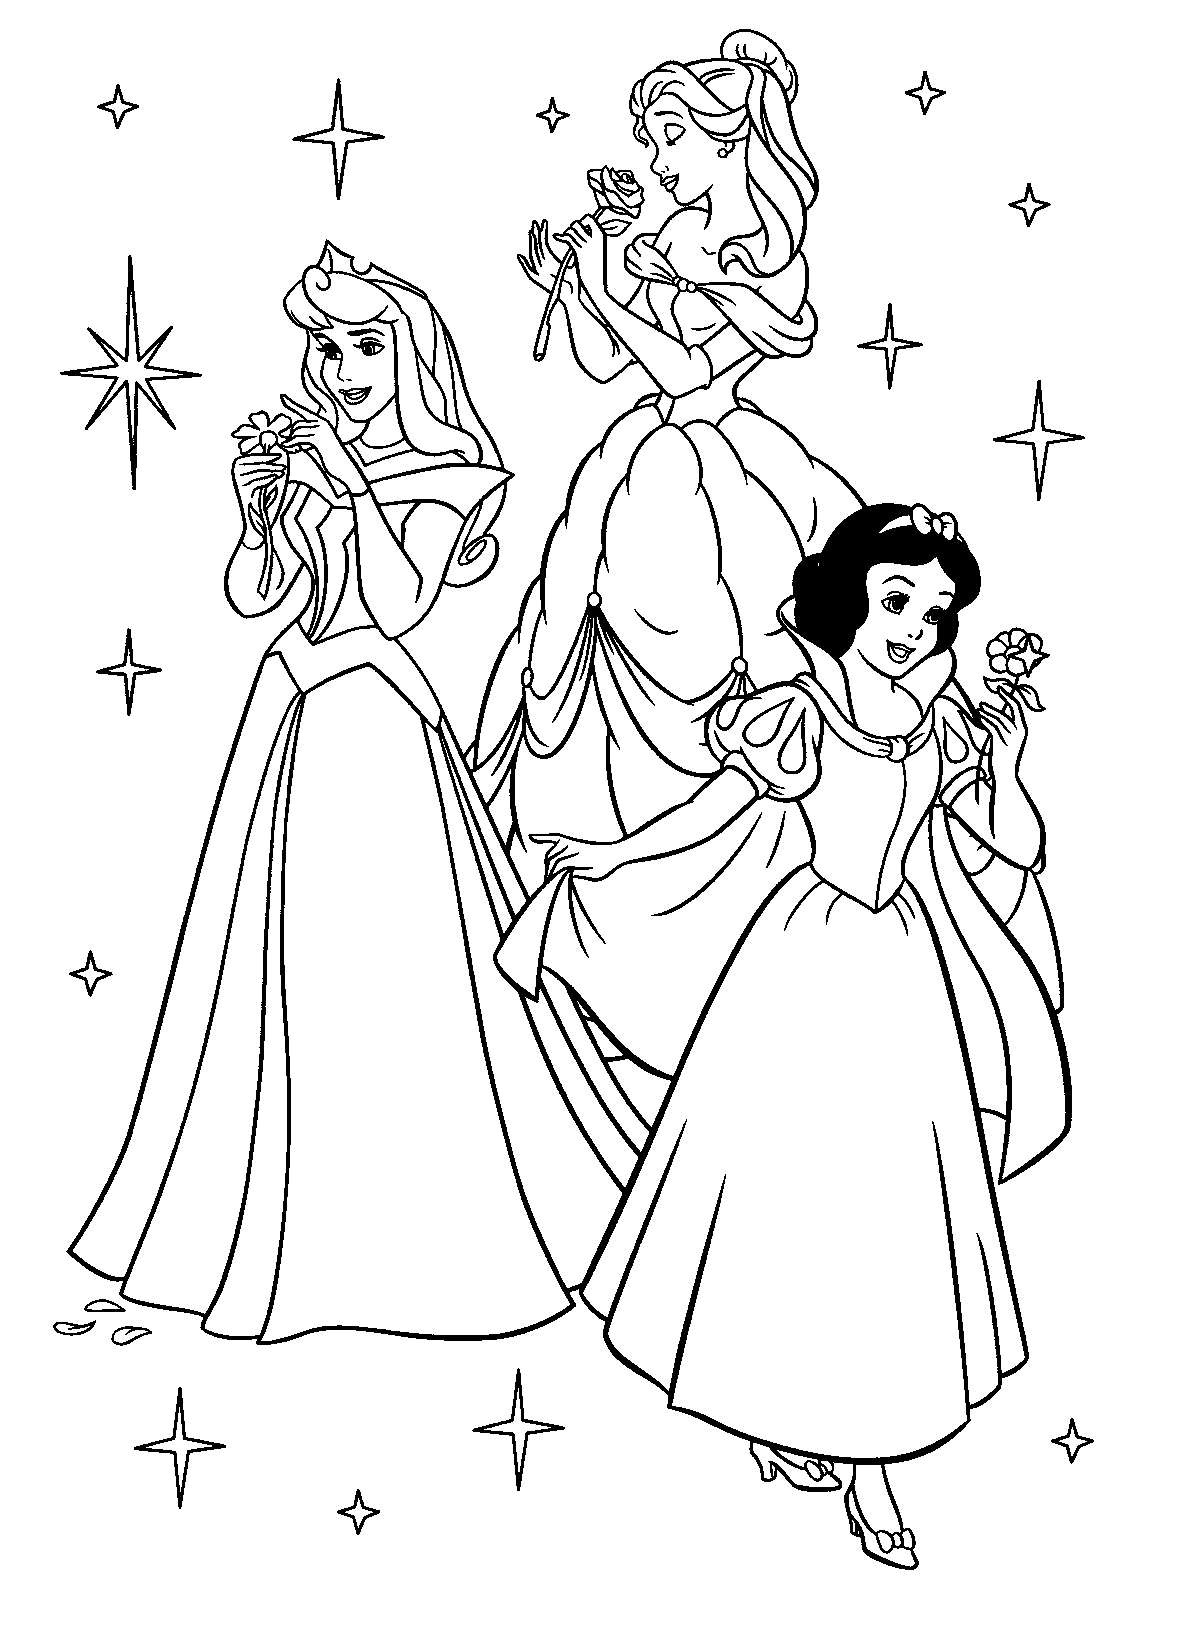 Free Printable Disney Princess Coloring Pages For Kids Printable Coloring Pages Princess